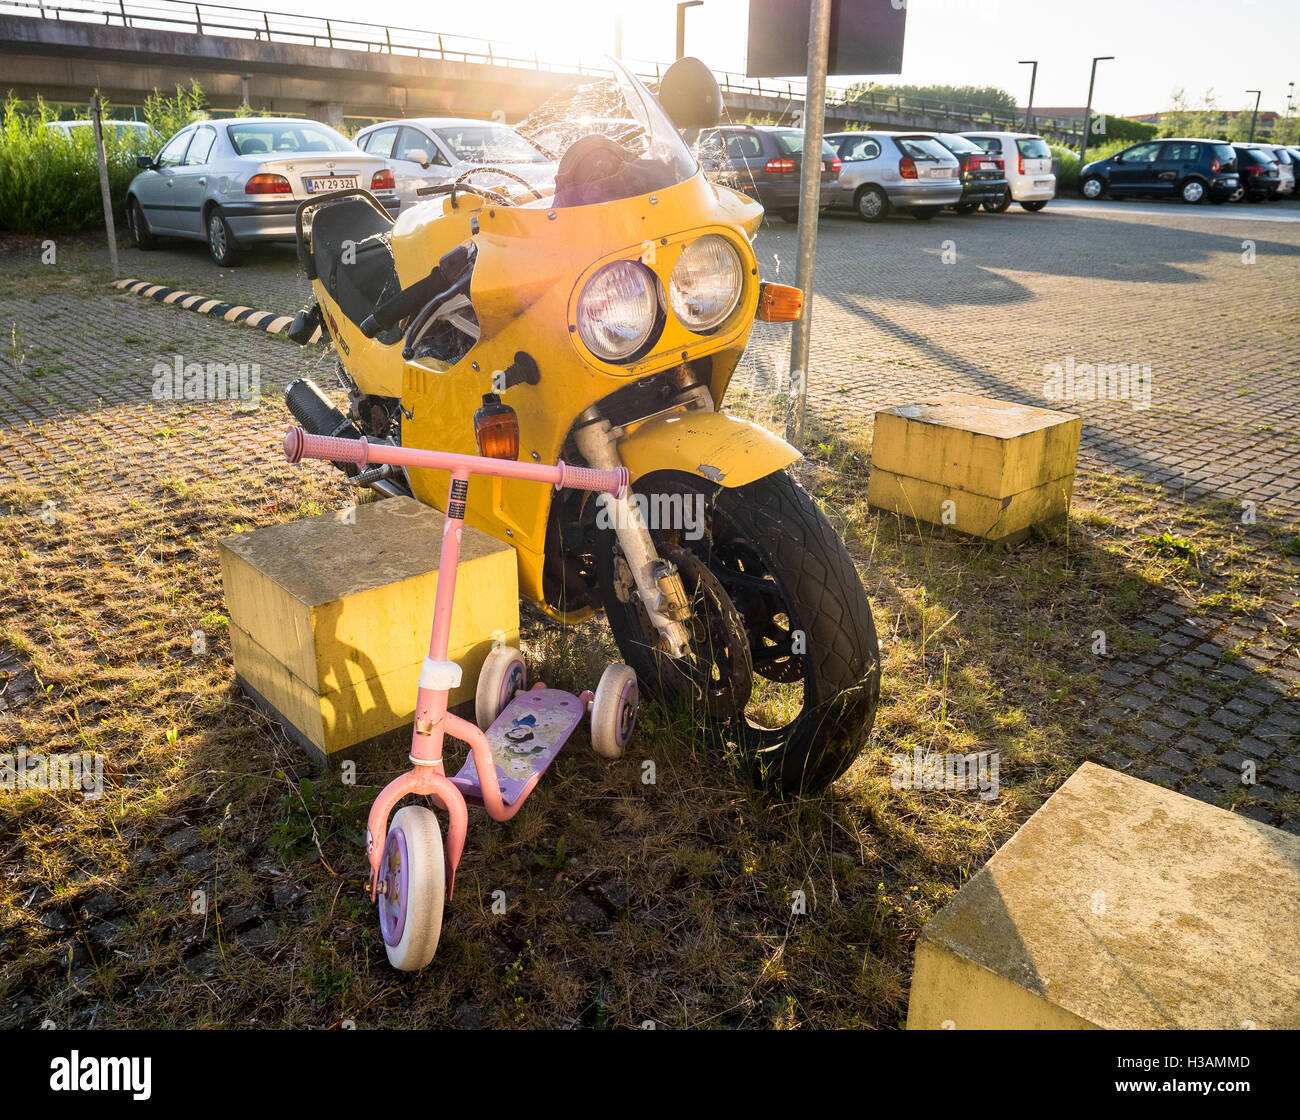 Yellow motorcycle left standing abandoned in a parking lot together with a small kids scooter - Stock Image